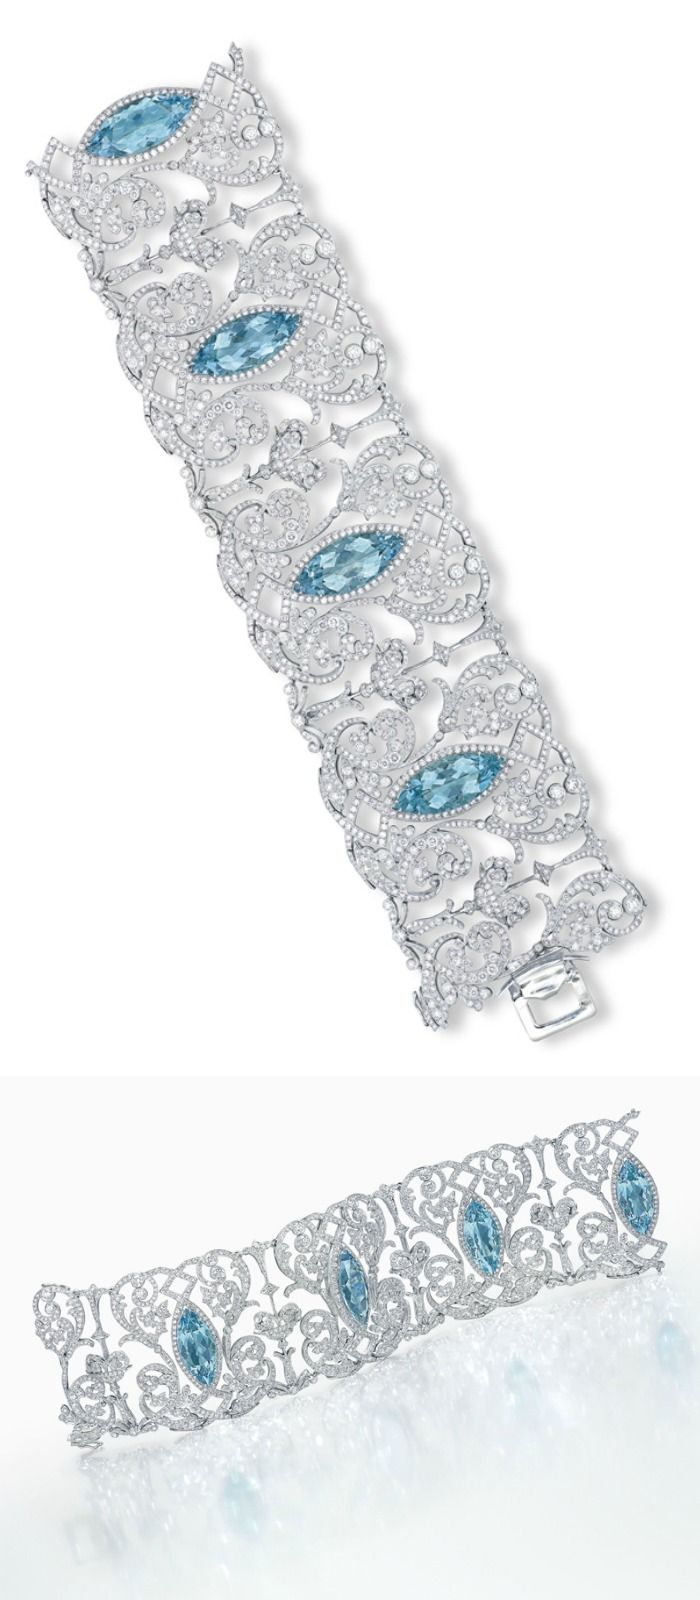 AN AQUAMARINE AND DIAMOND BRACELET, BY TIFFANY & CO.: The wide band designed as four openwork panels, each centering on a marquise-cut aquamarine, within a circular-cut diamond scrolling foliate surround, interspersed by giardinetto and palmette motif links, mounted in platinum, 18.2 cm, in black suede Tiffany & Co. case. Via Christie's.